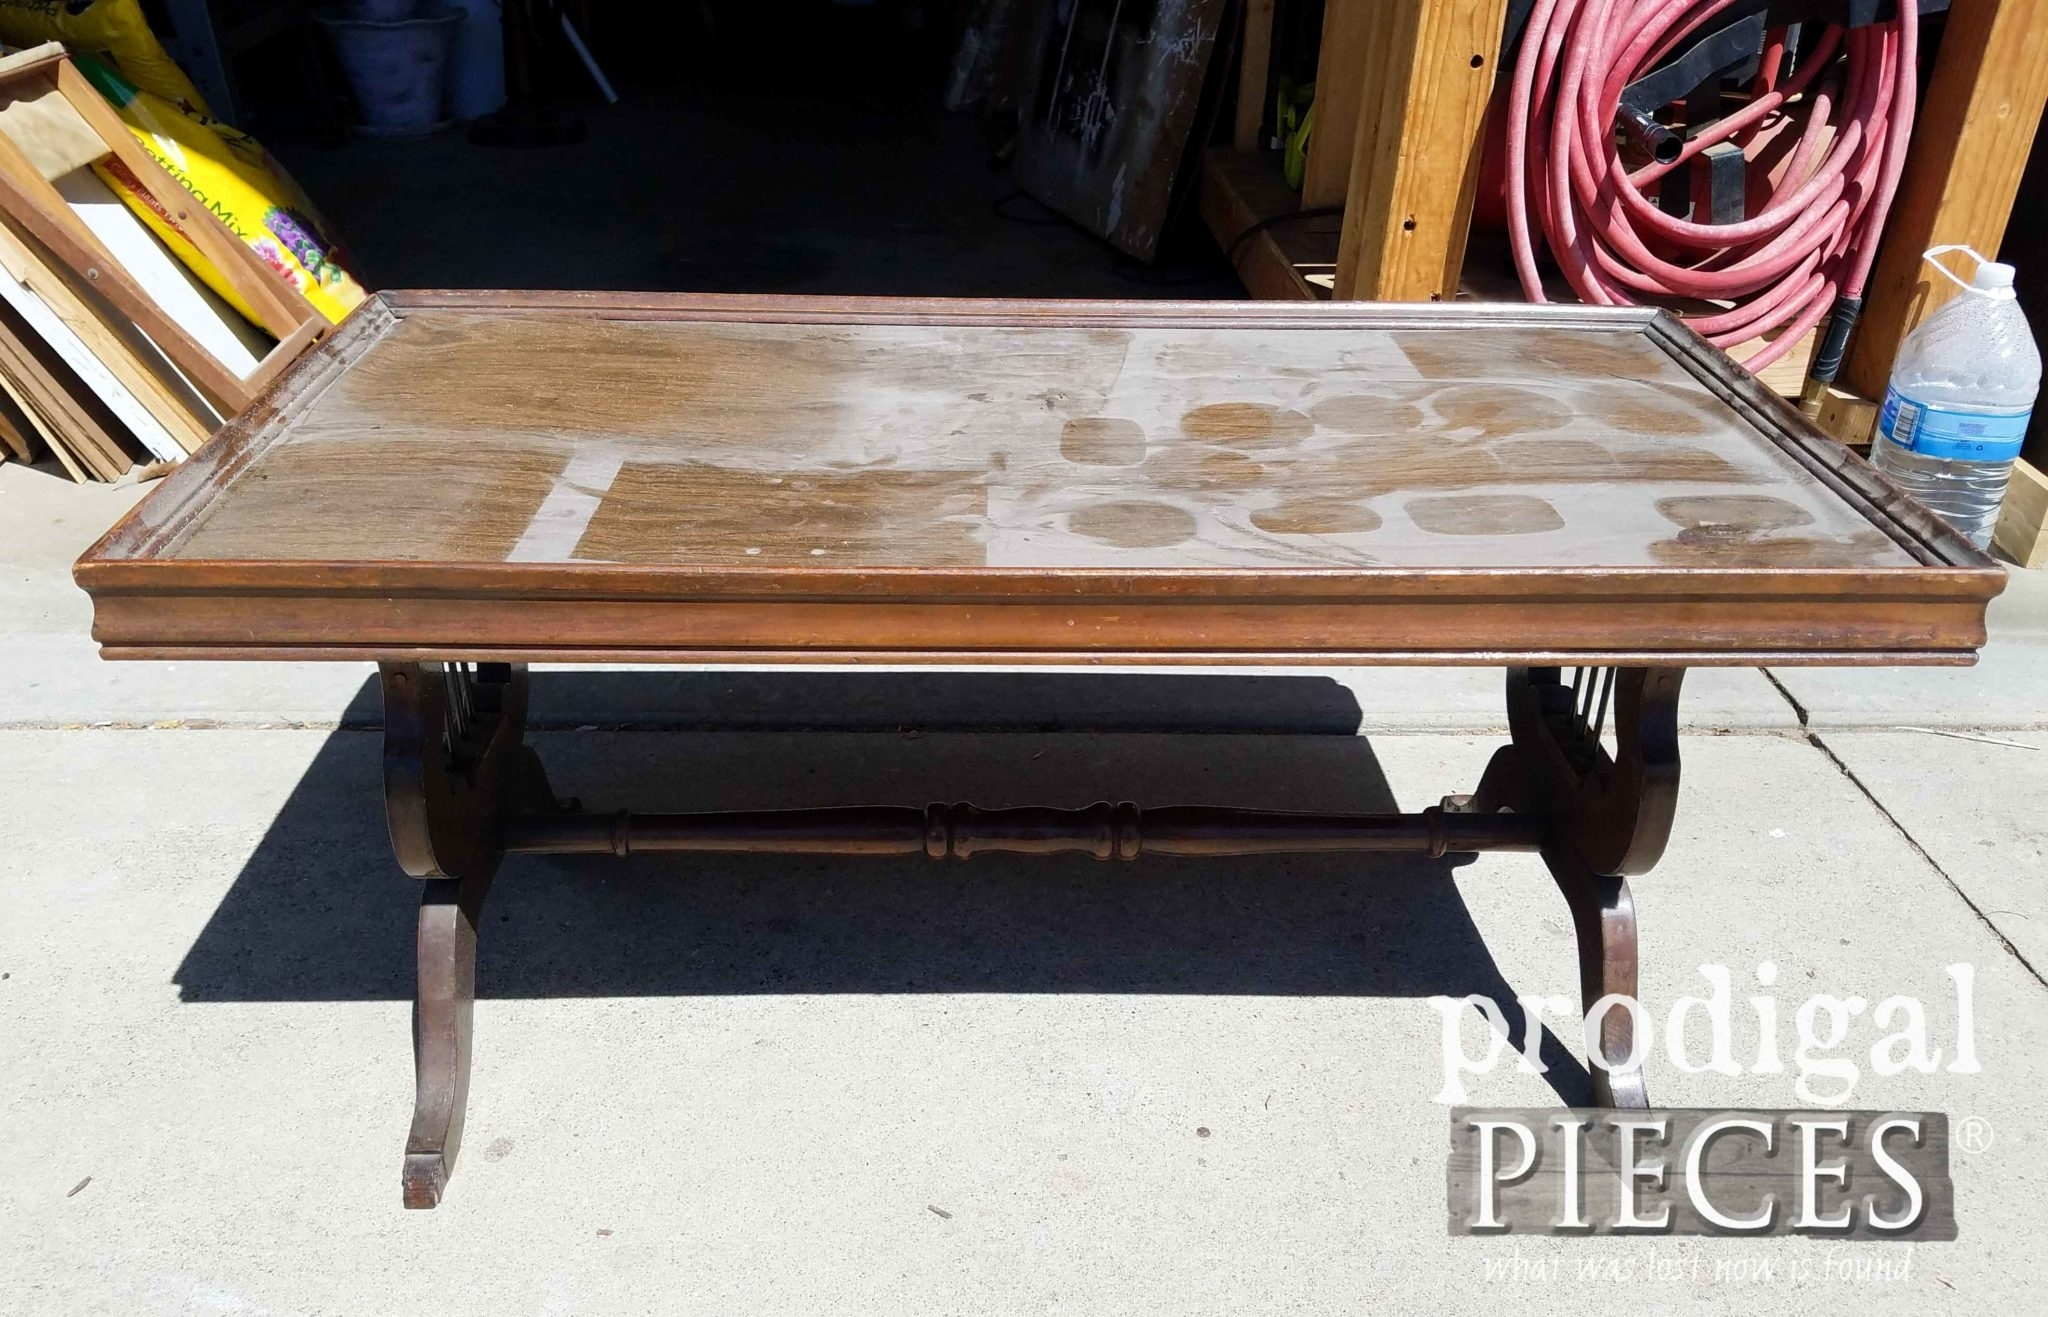 Antique Lyre Coffee Table Rescued & Restored - Prodigal Pieces regarding Lyre Coffee Tables (Image 4 of 30)